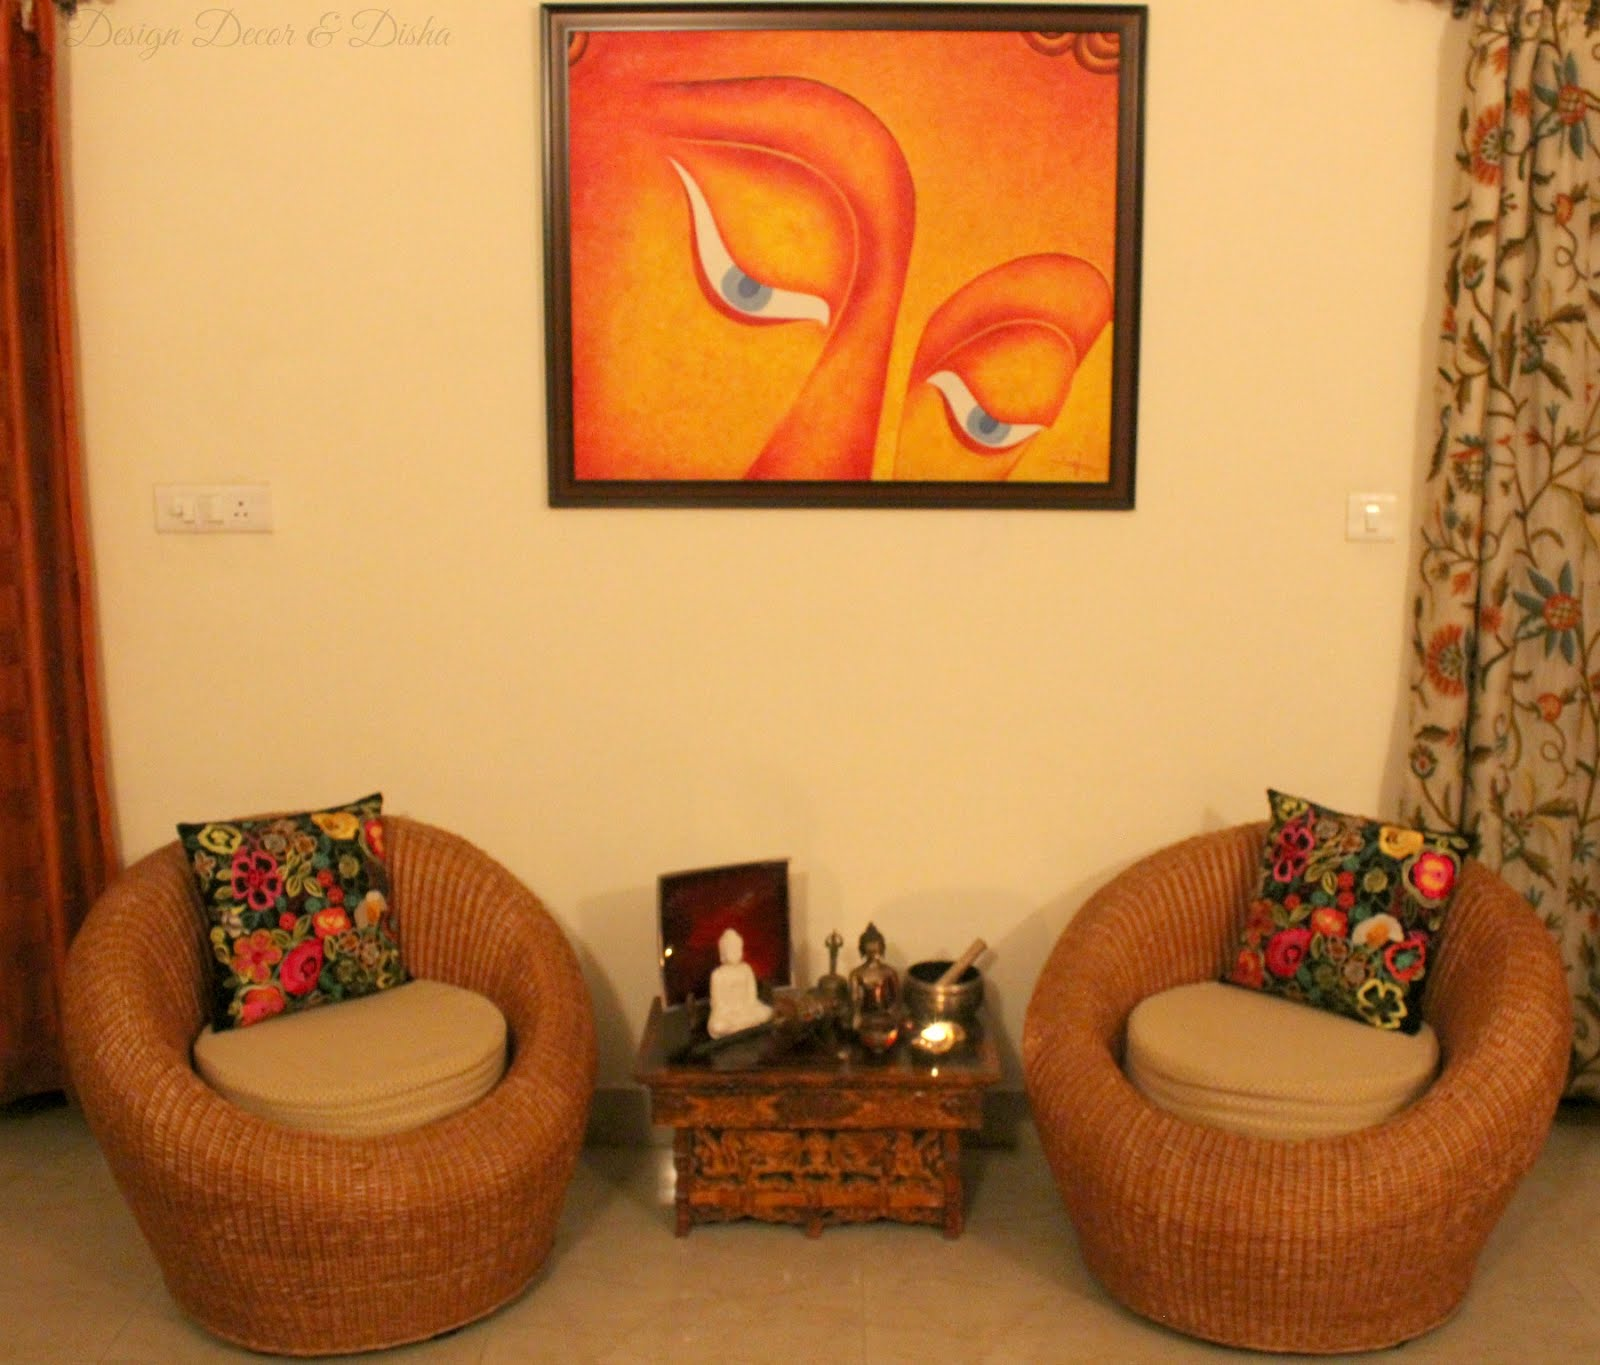 Design decor disha an indian design decor blog home tour parul chaturvedi - Home decor texas ideas ...